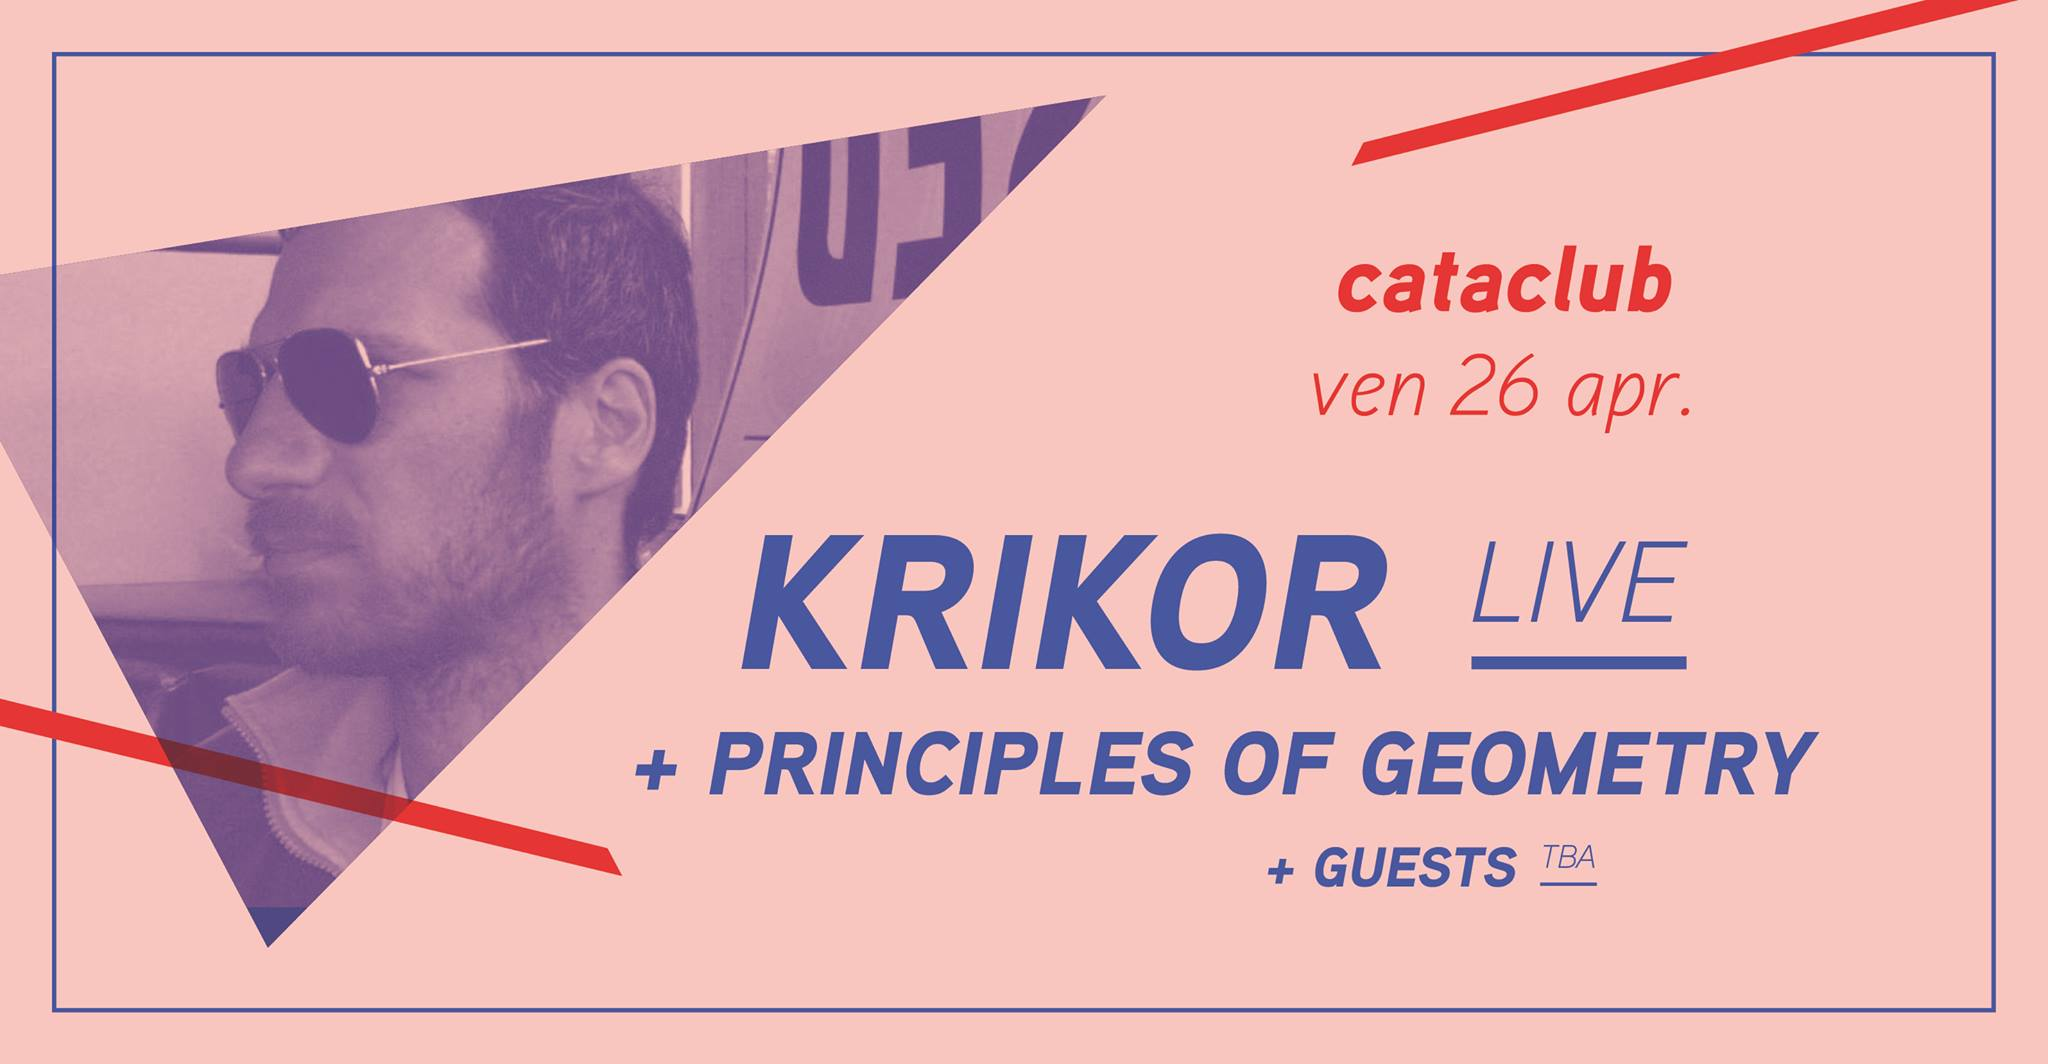 Krikor (live) + Principles of Geometry